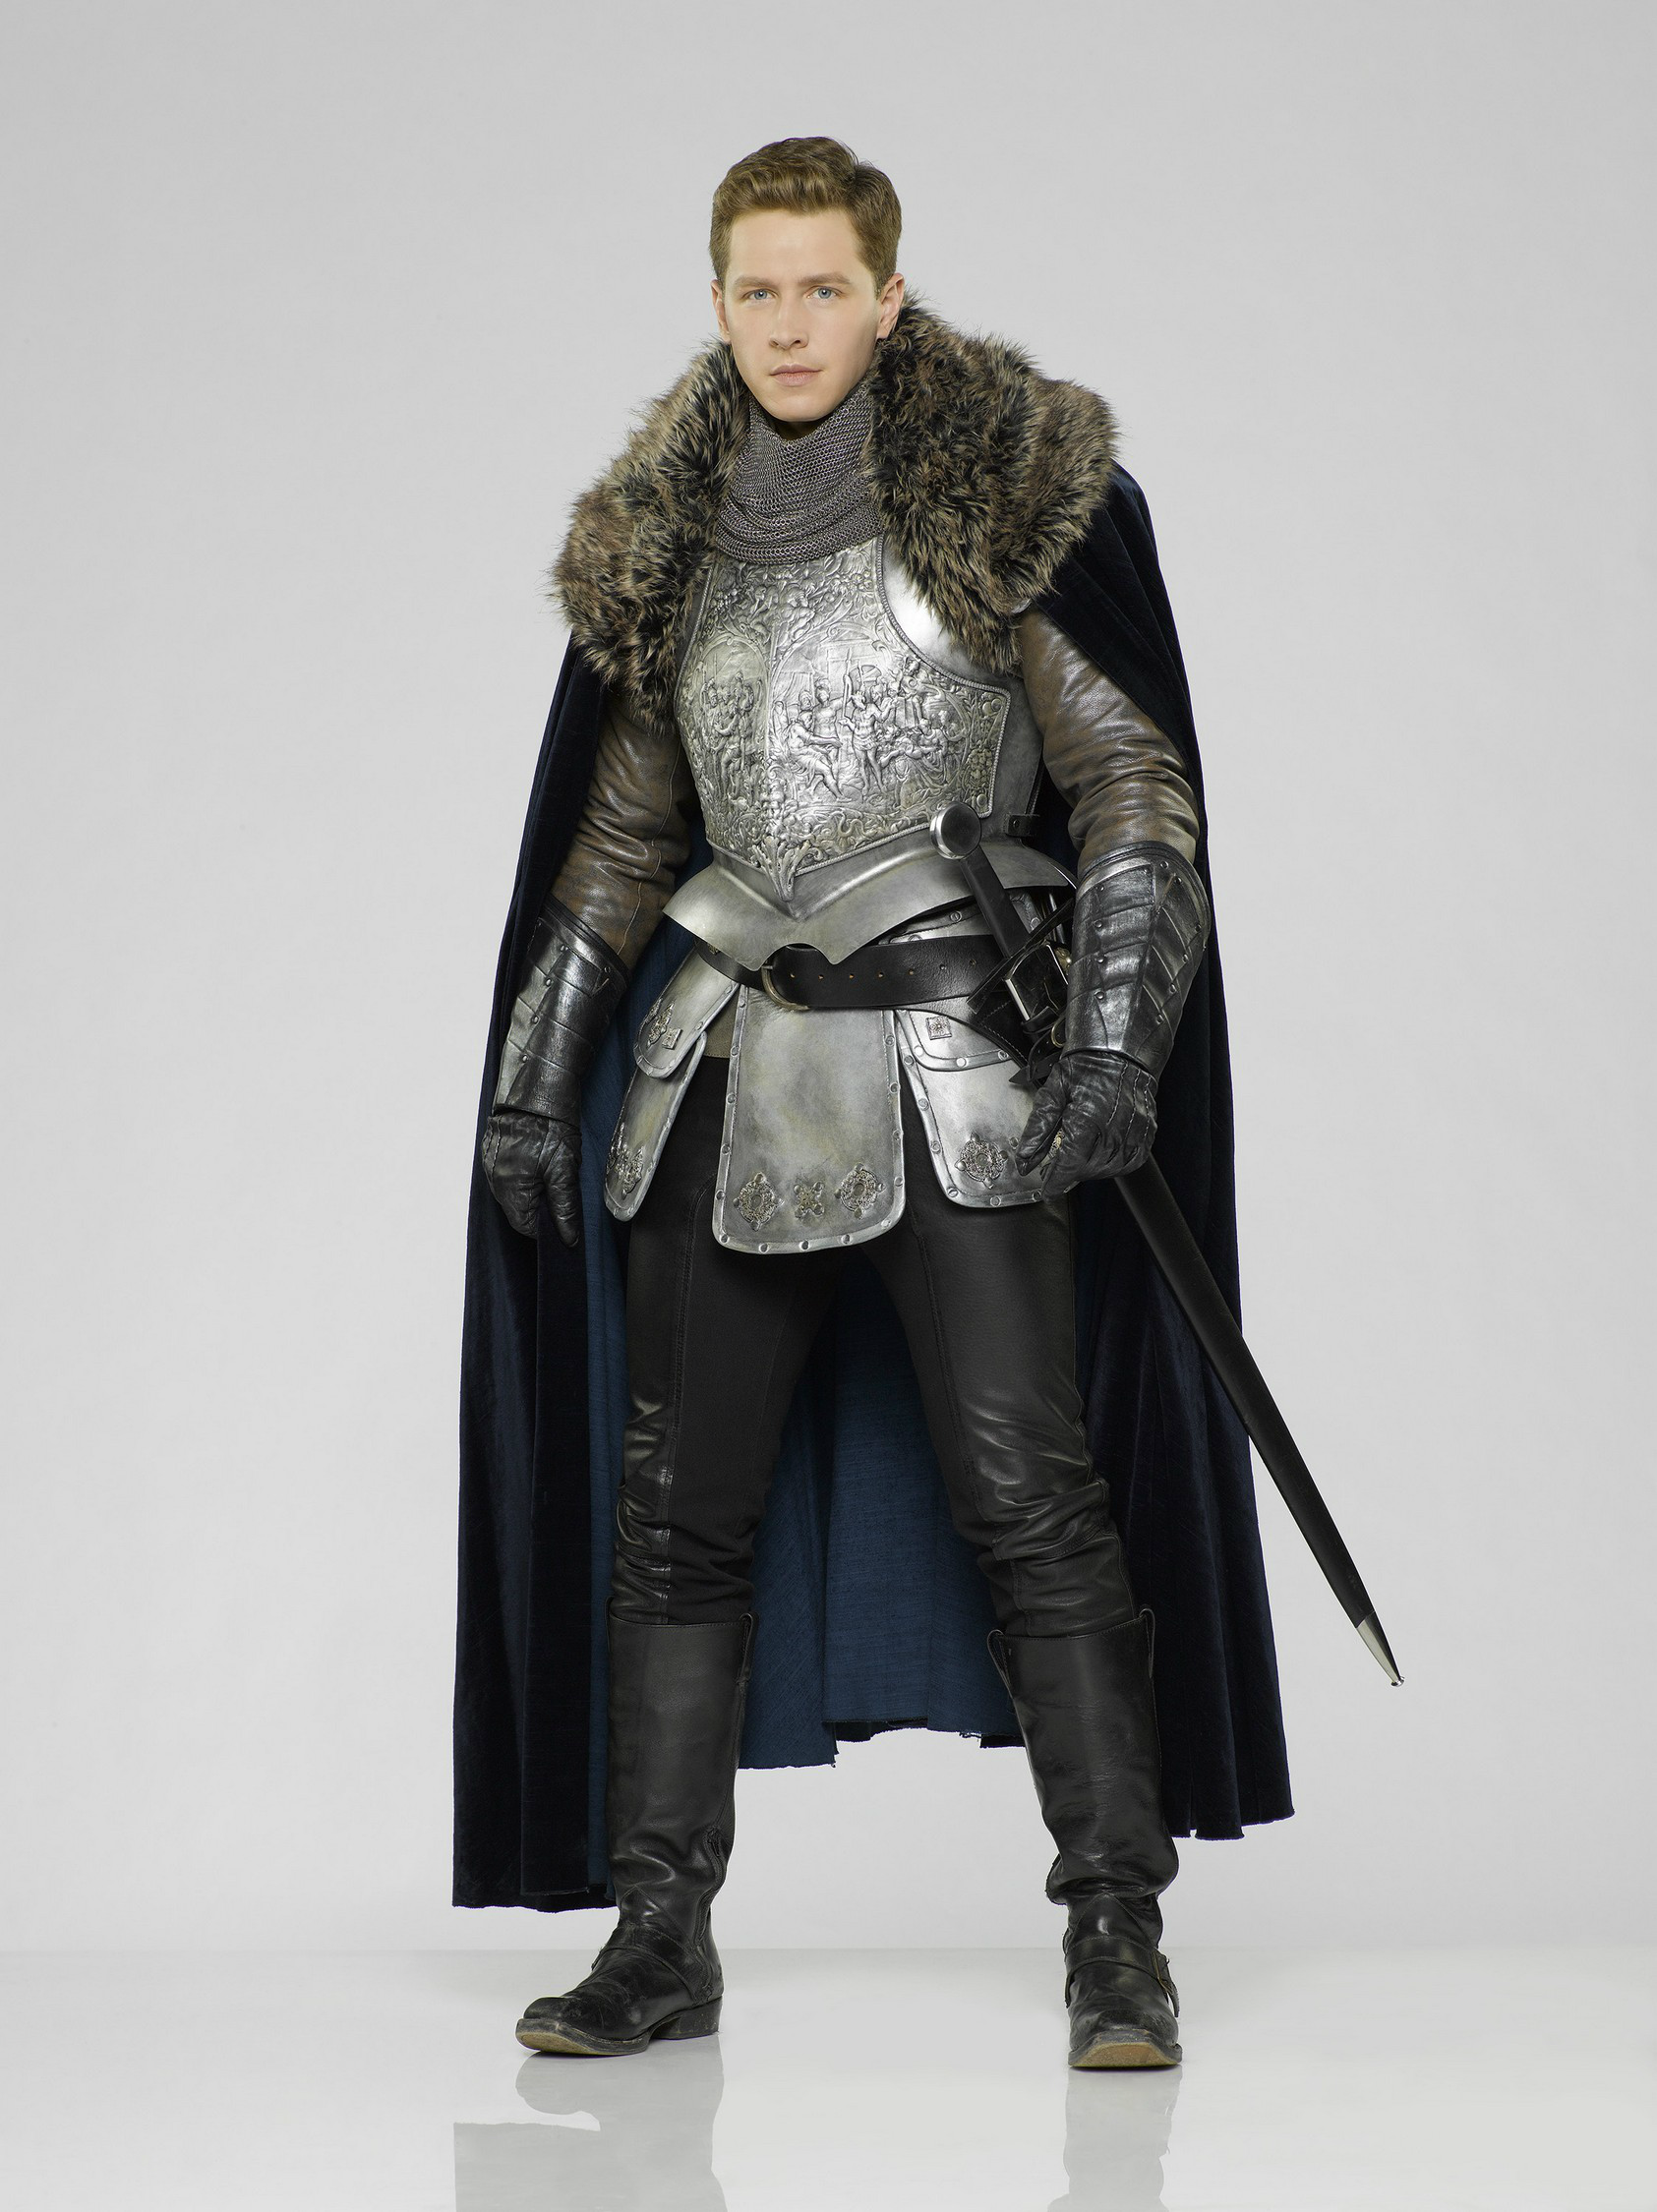 Image - Promo Charming S3 07.png | Once Upon a Time Wiki ...